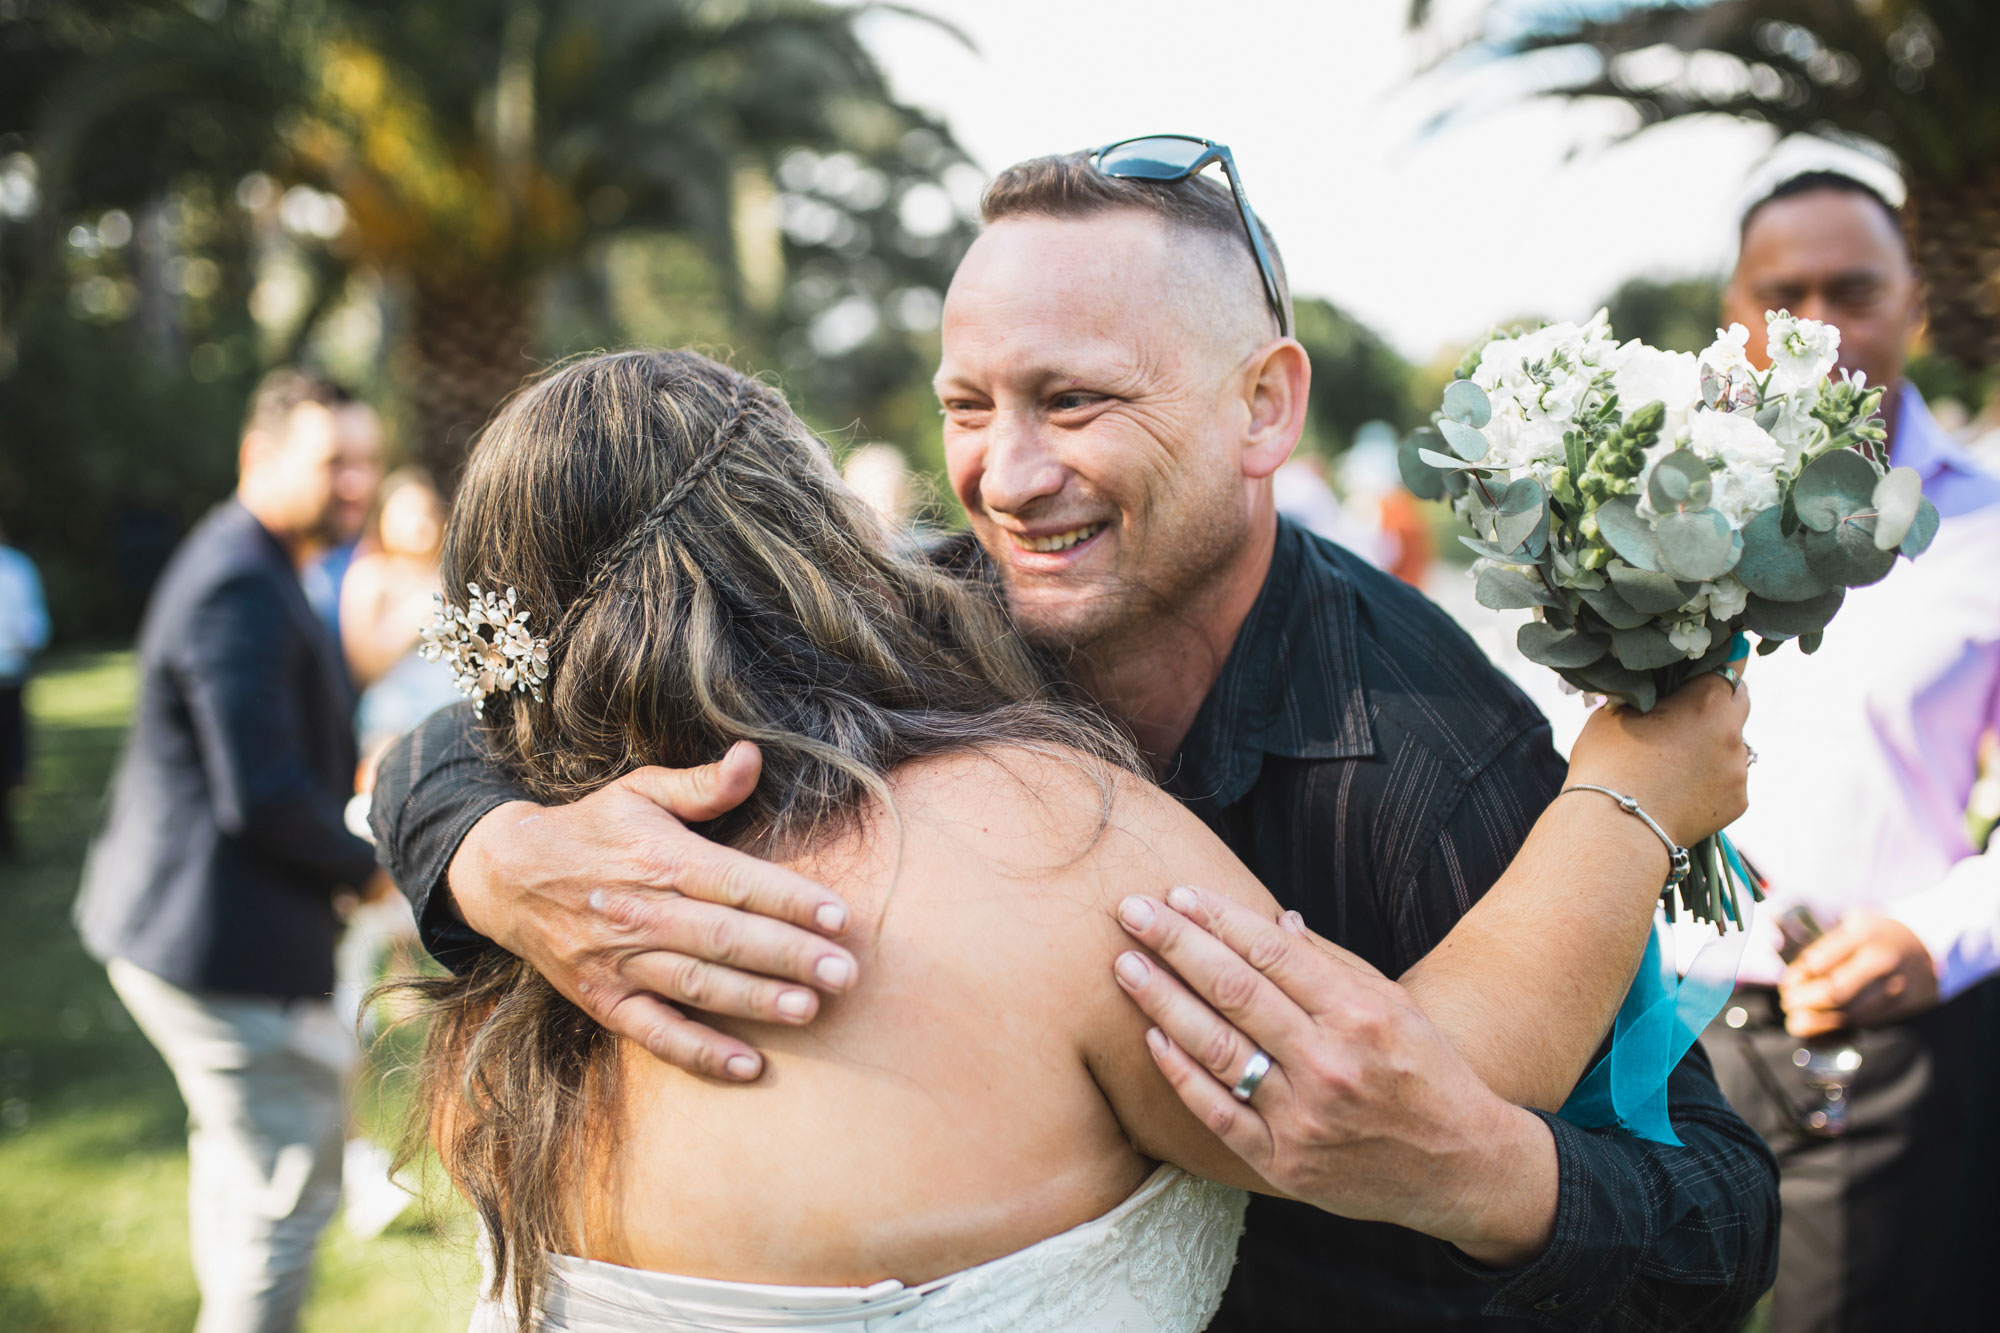 auckland wedding guest smiling